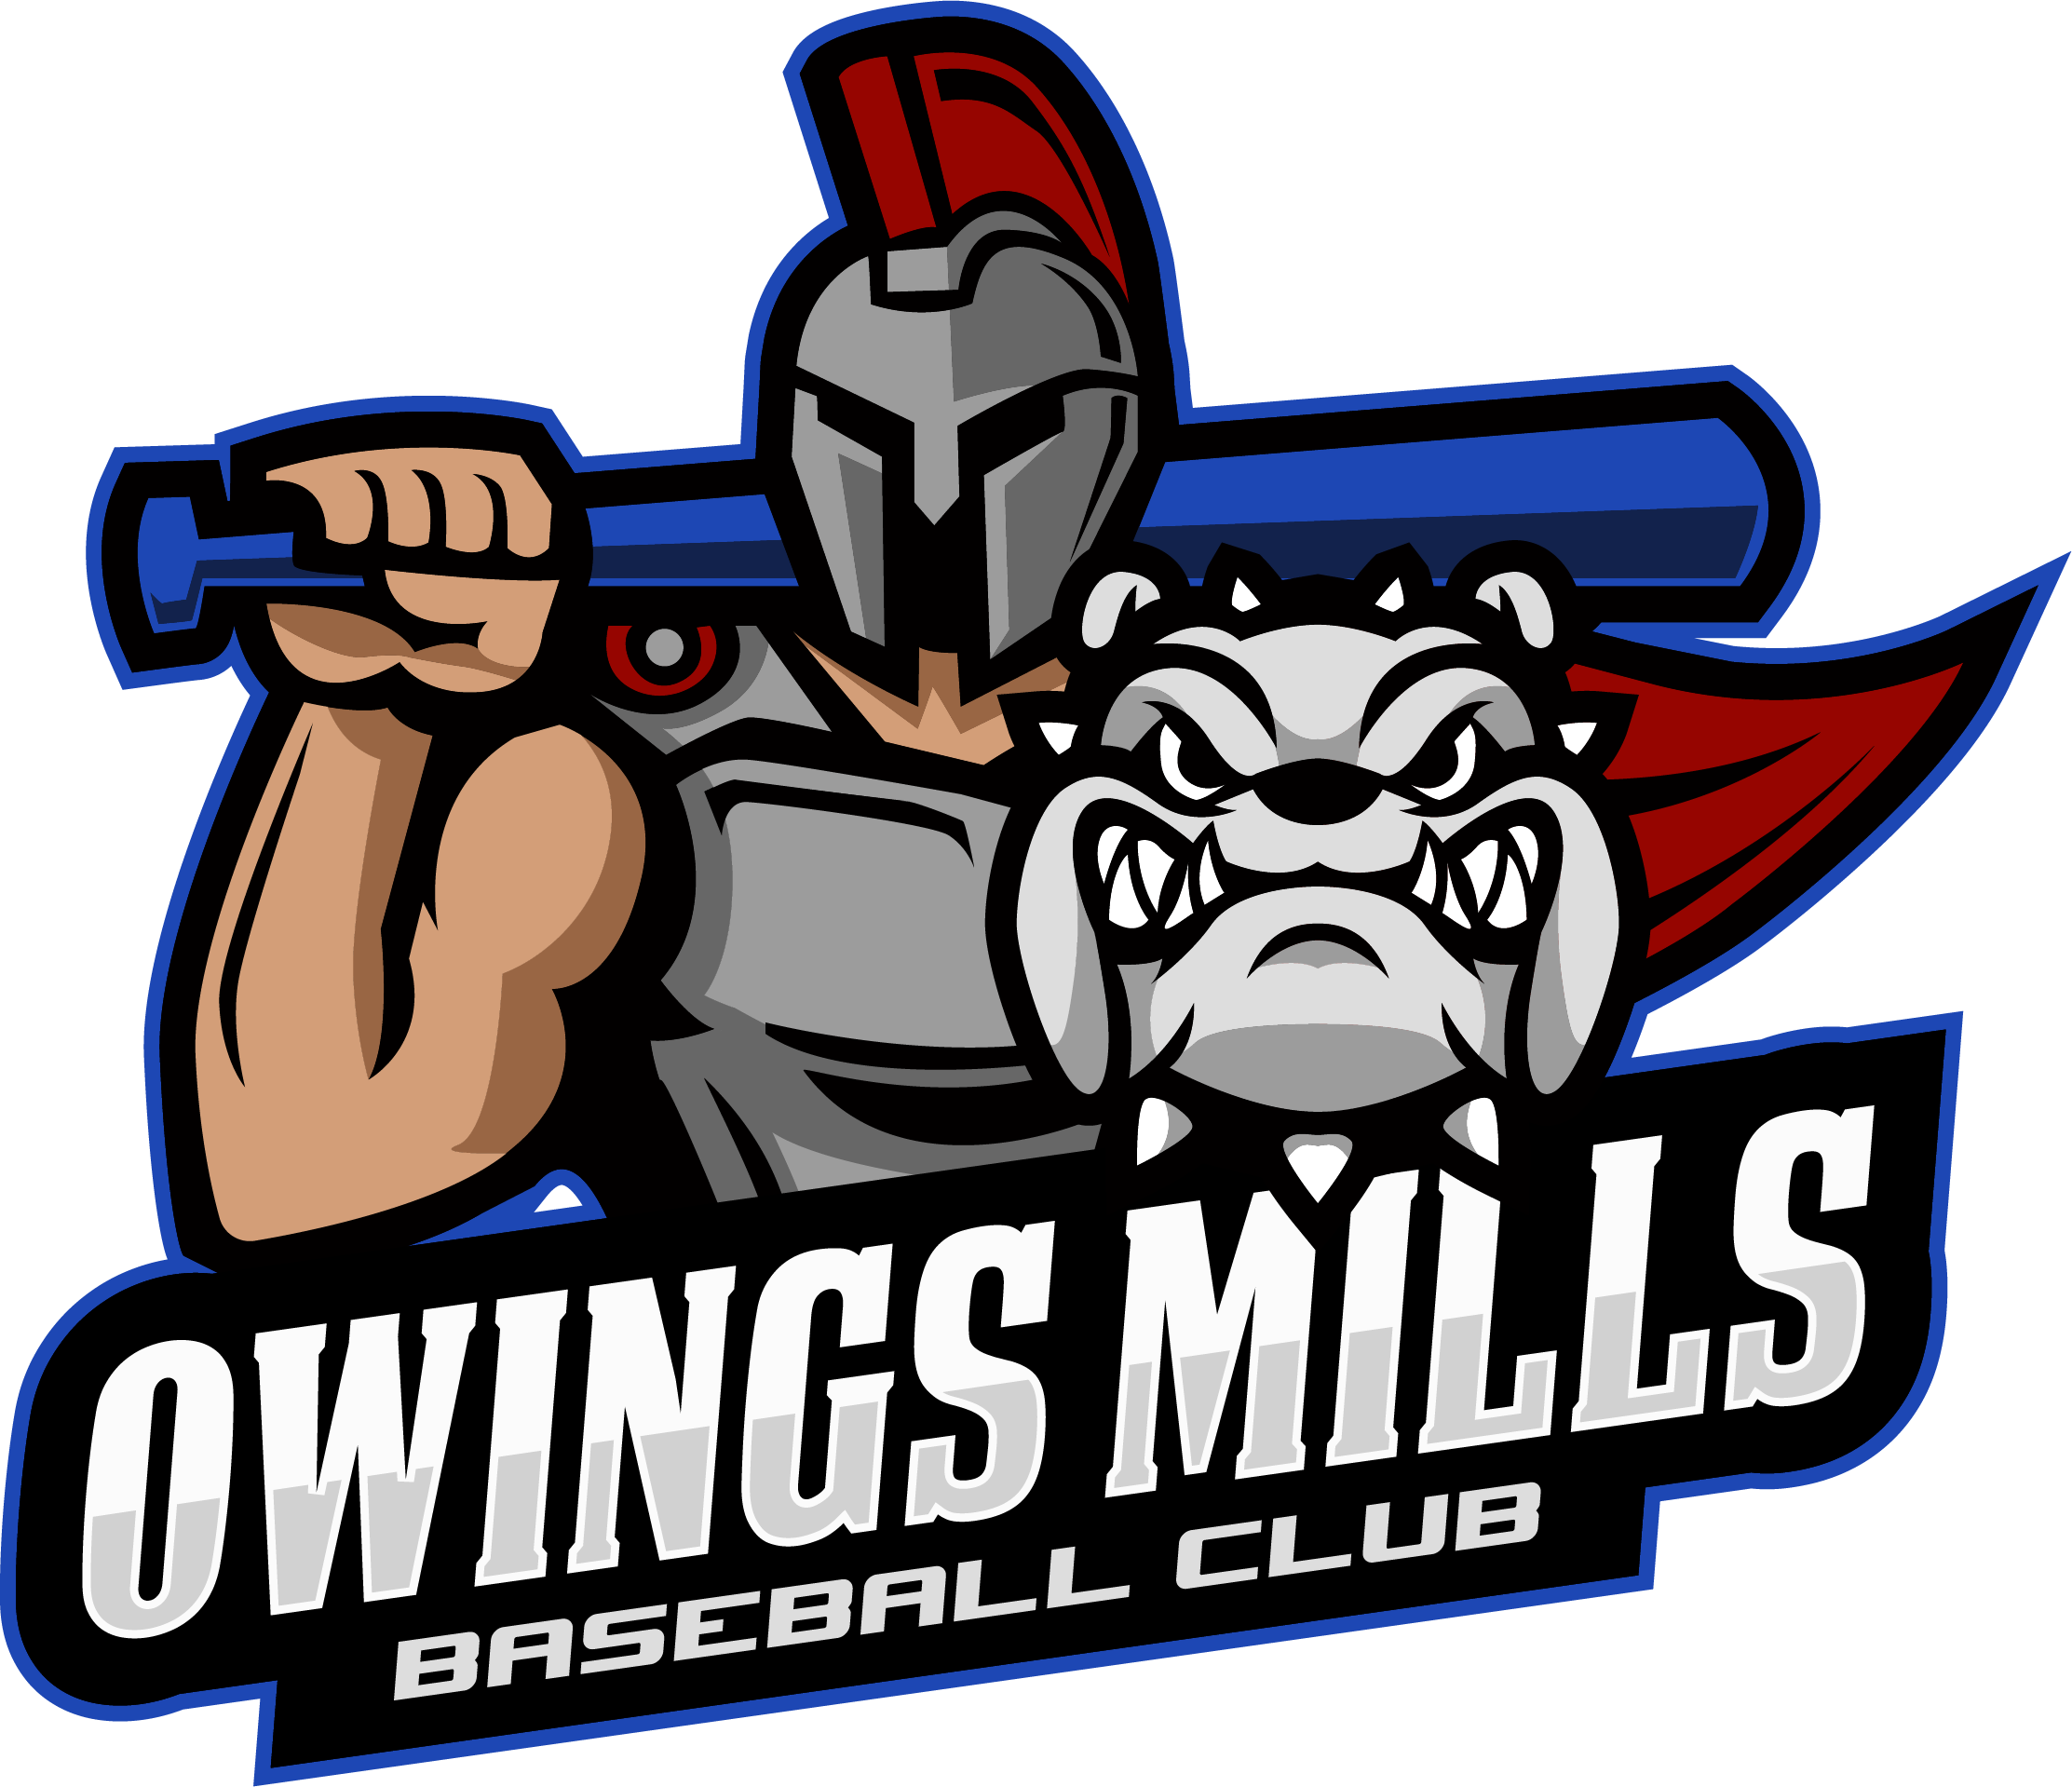 Opening day baseball clipart clipart free Owings Mills Spartans Baseball Club - (Owings Mills, MD) - powered ... clipart free